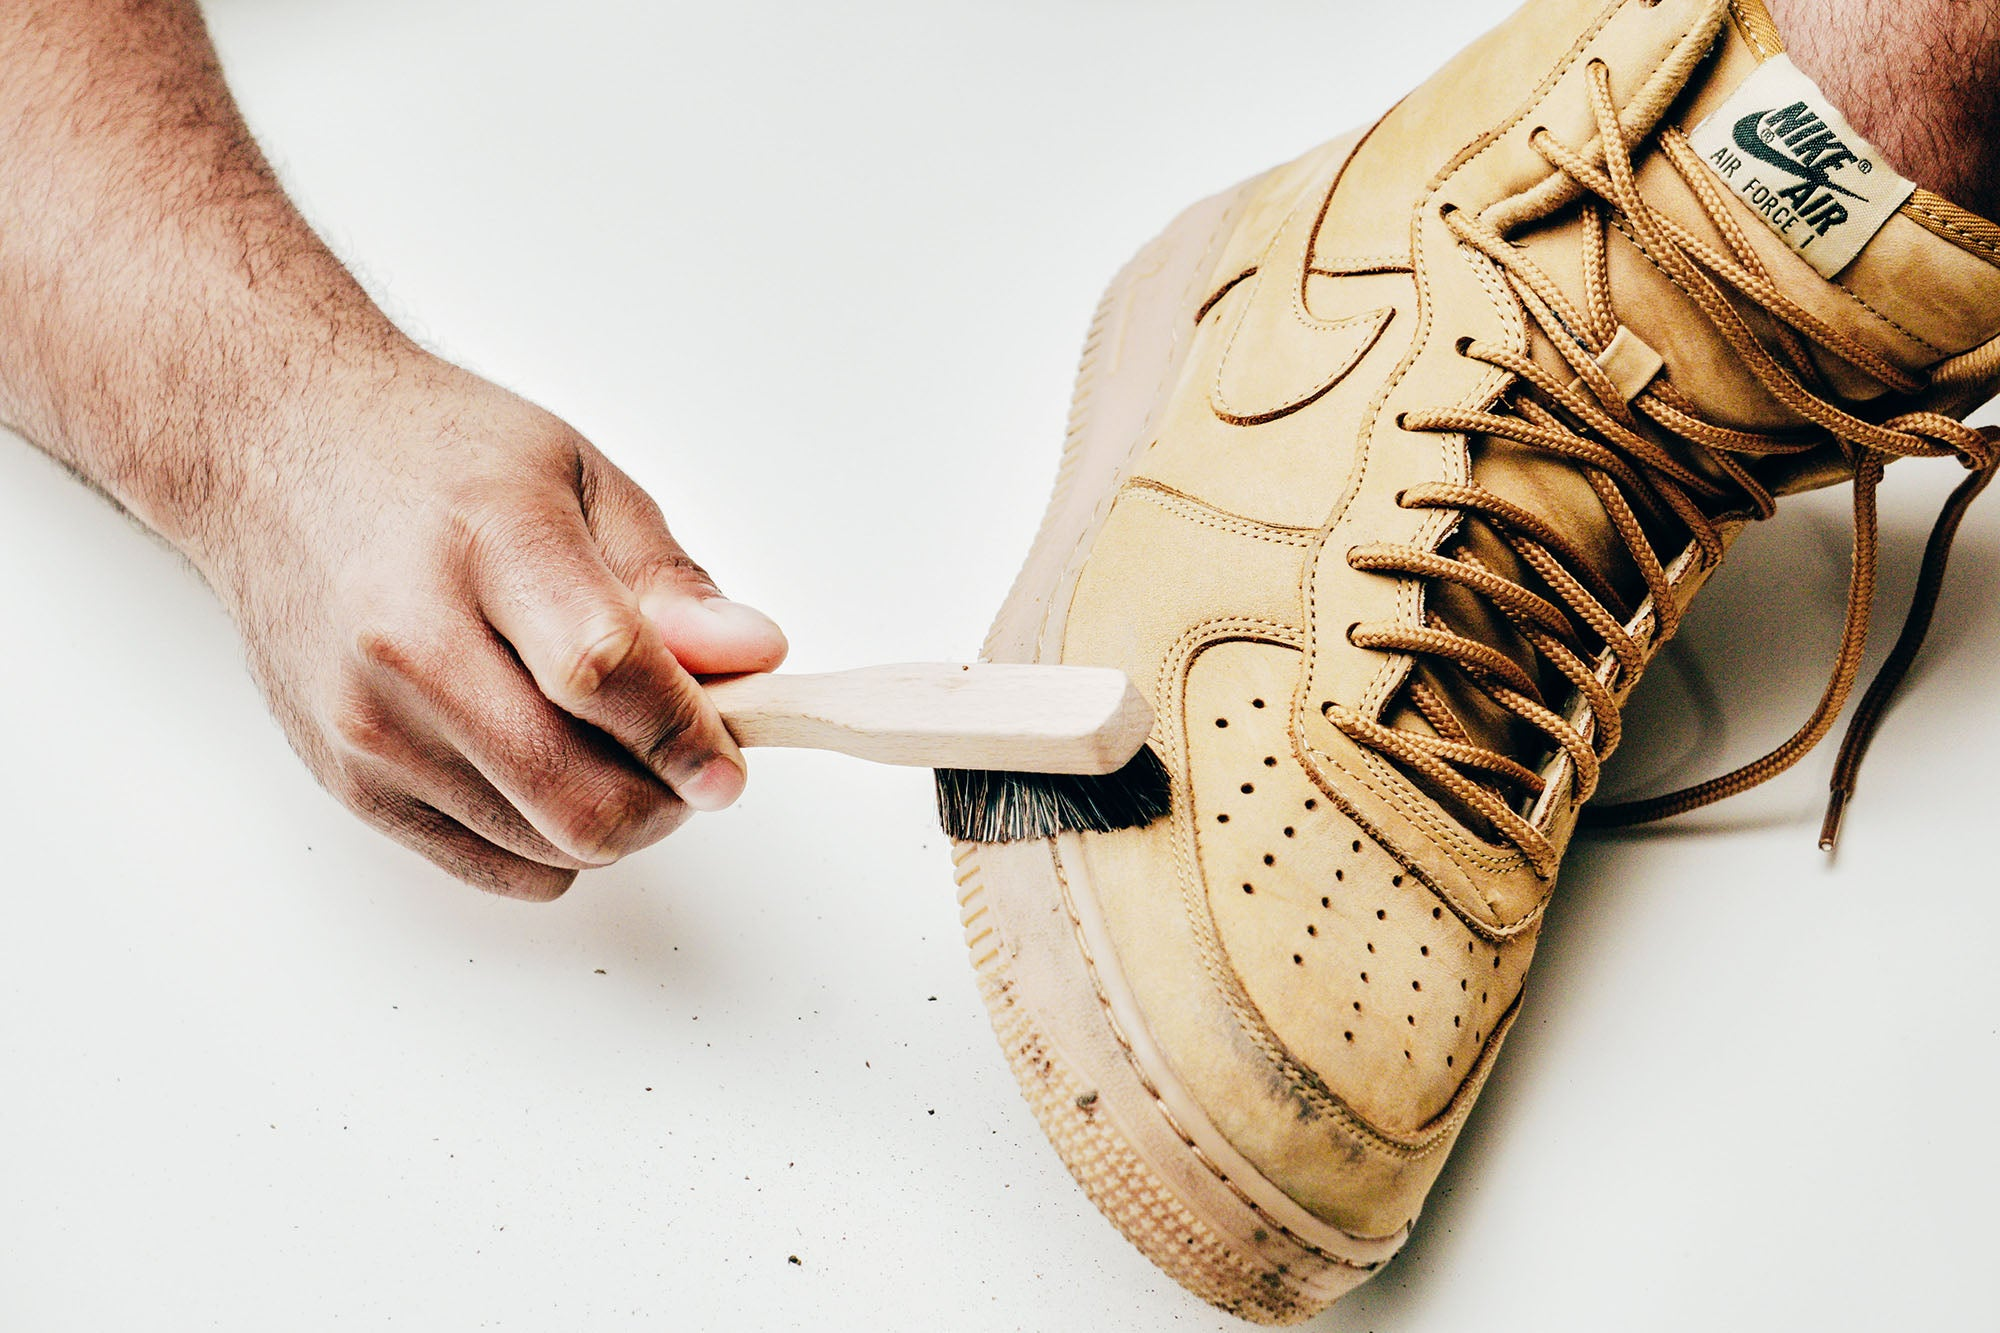 Jason Markk Sneaker Care 101 How to clean Nubuck shoes step 1